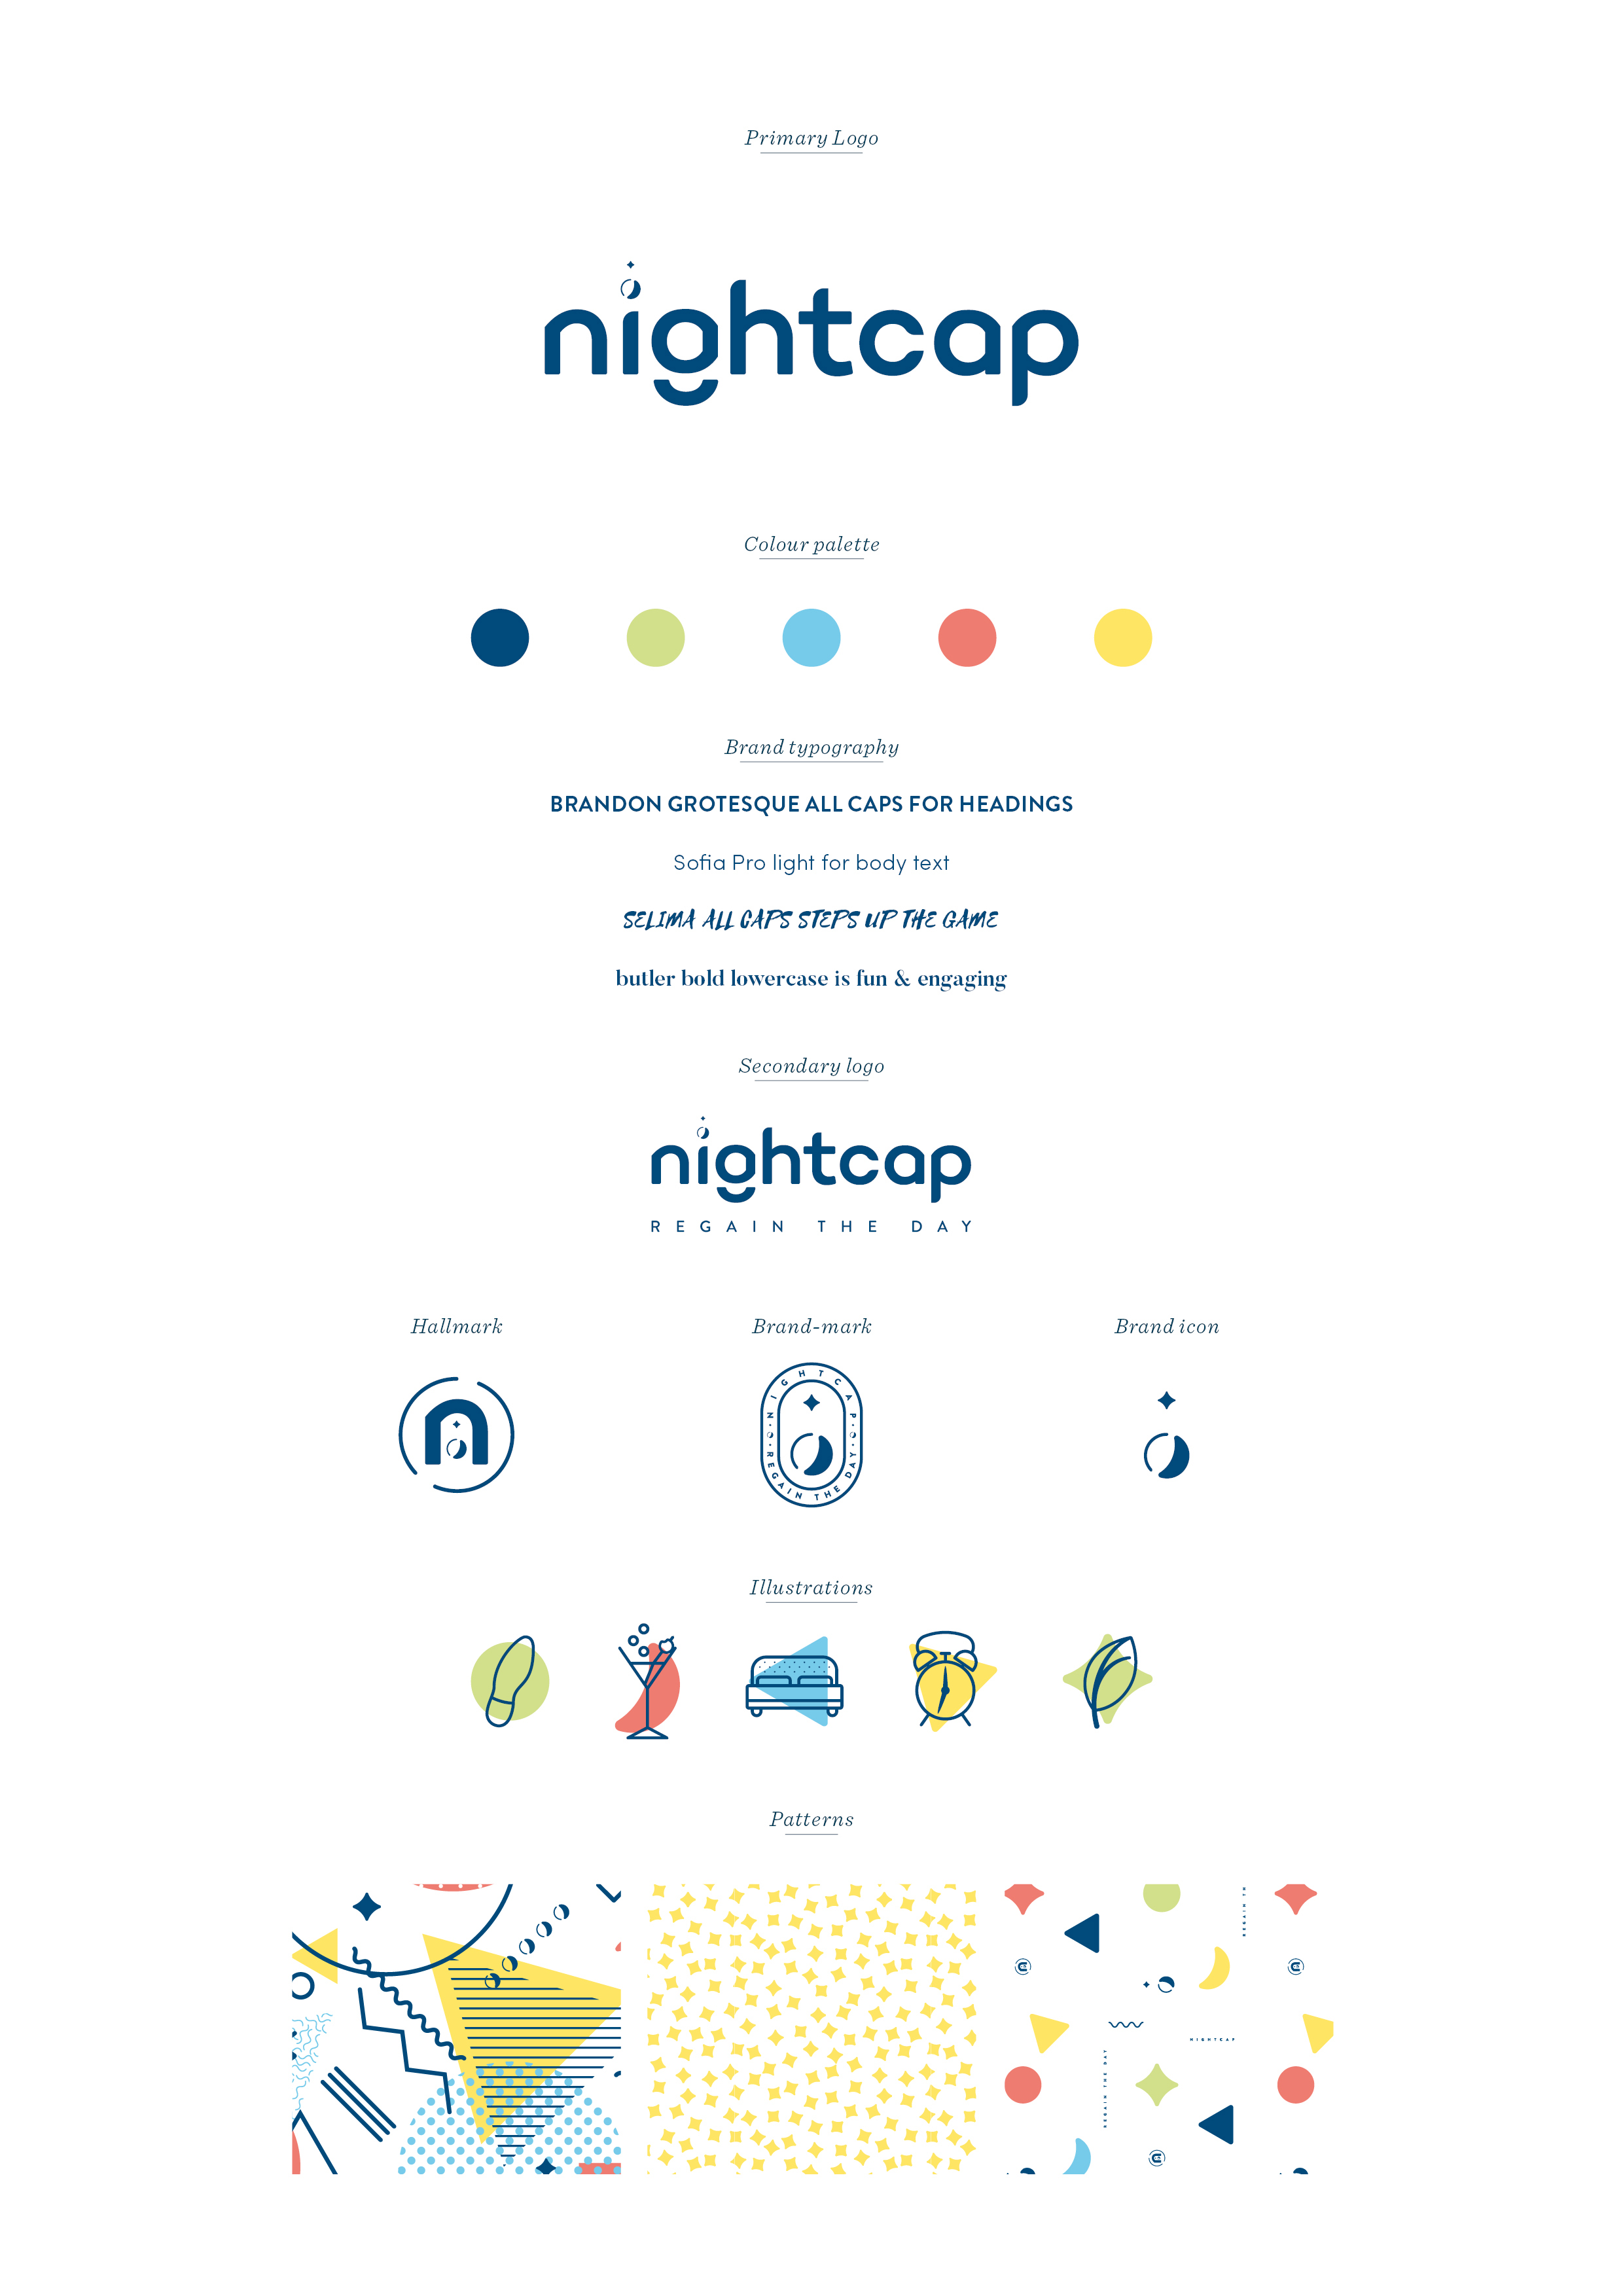 Nightcap brand design by Ditto creative, boutique branding agency in kent